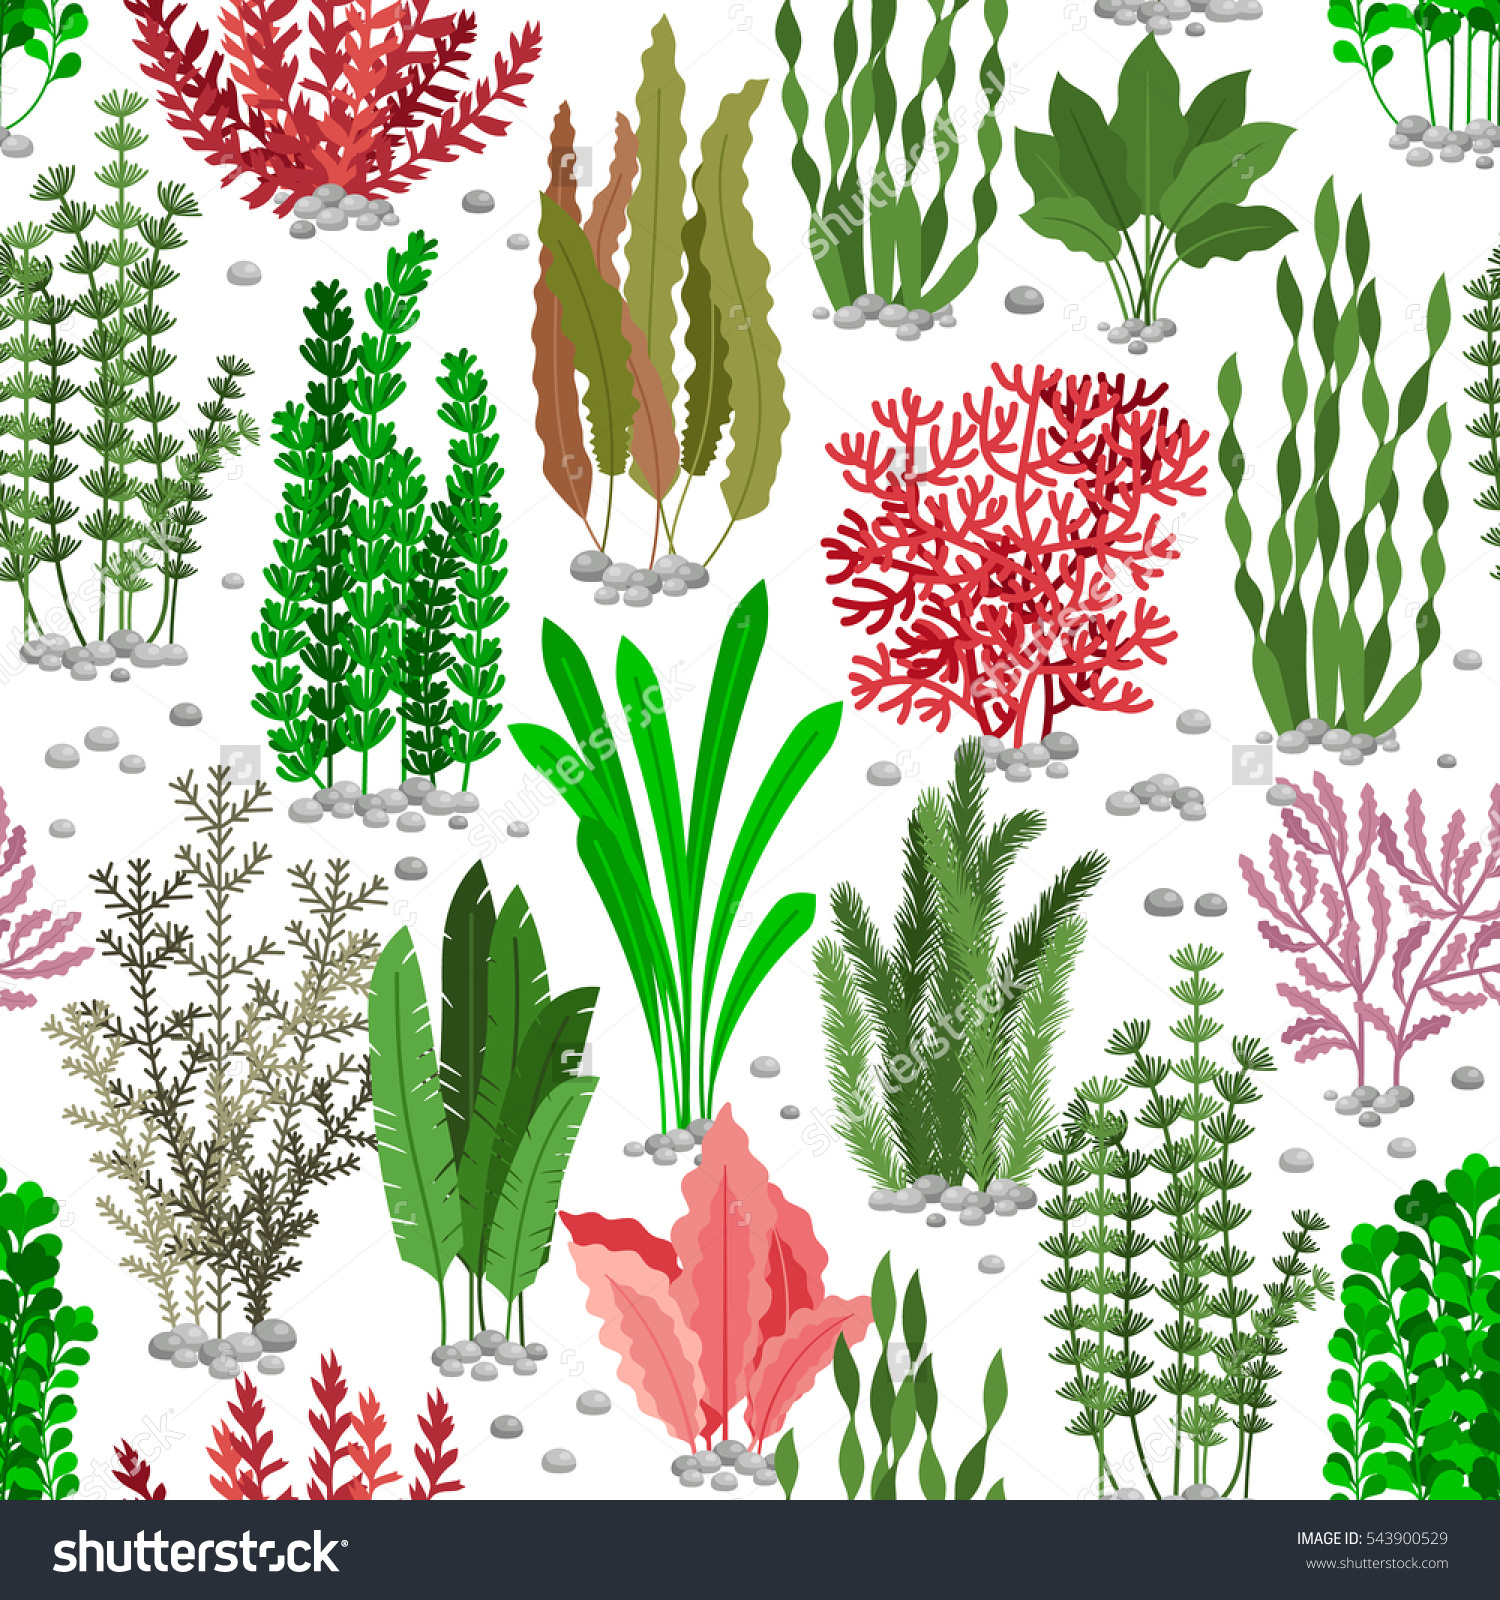 Marine Plant clipart #15, Download drawings